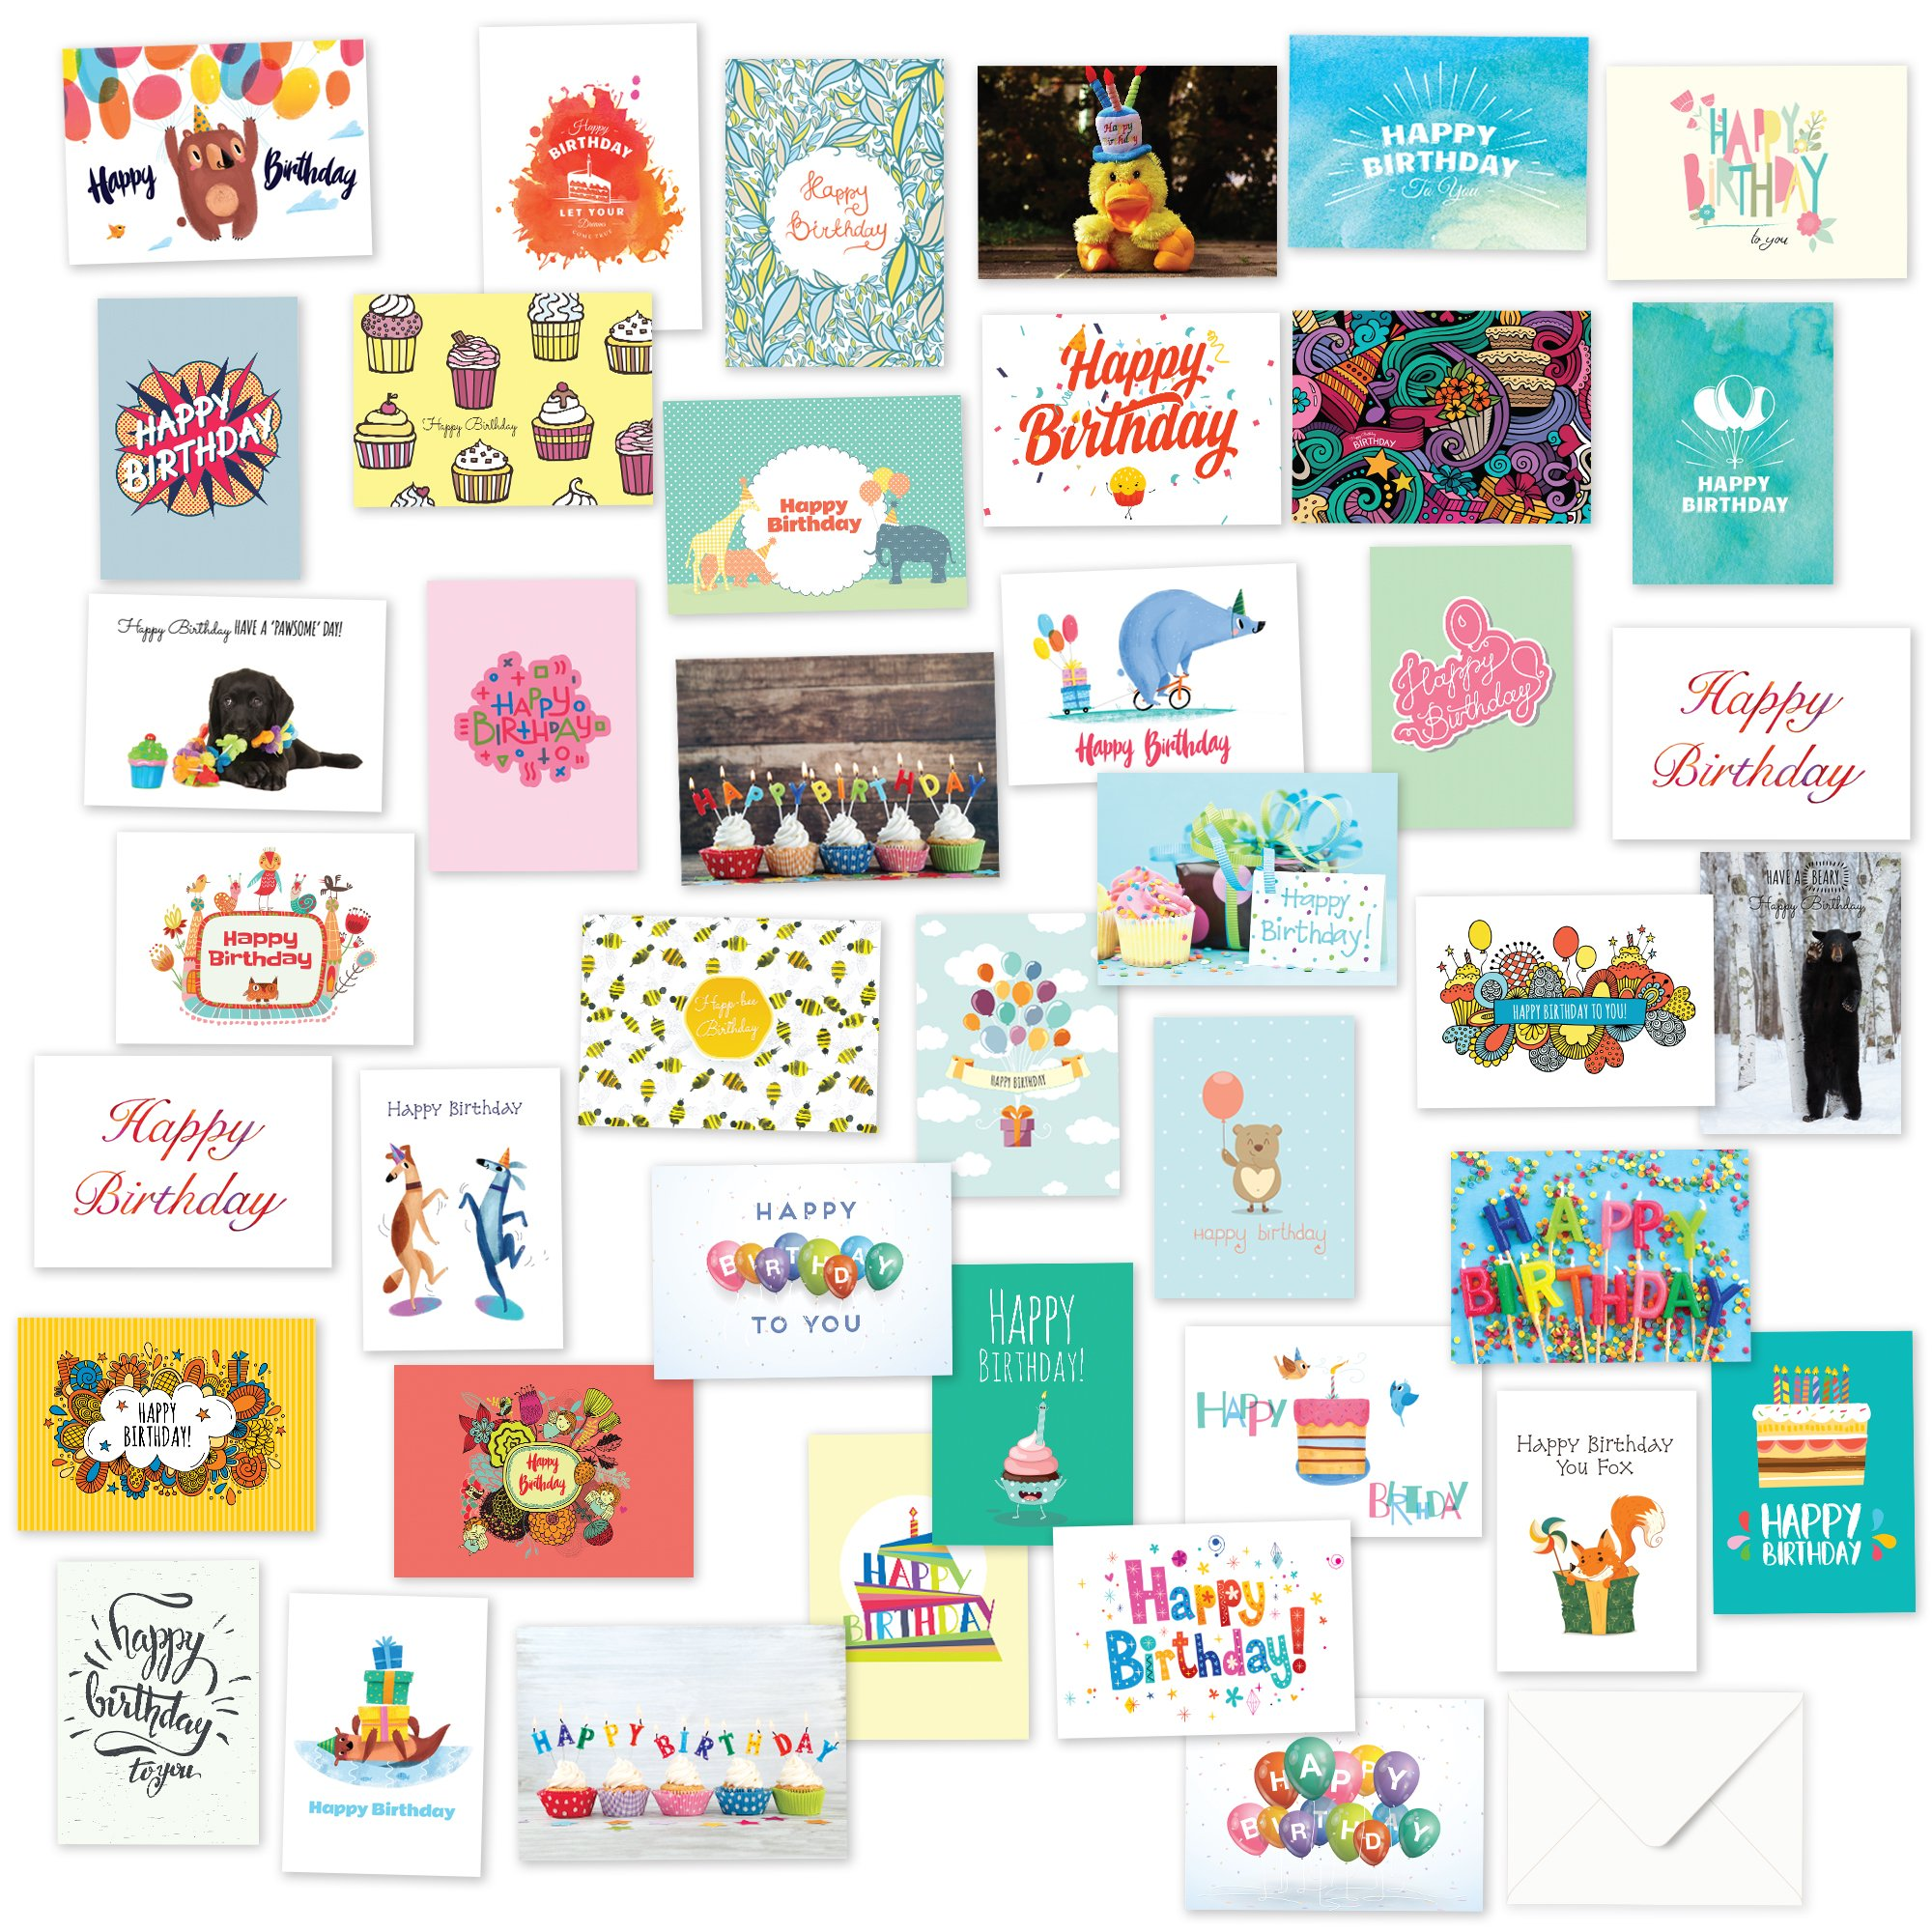 Buy 40 Birthday Cards Assortment AcircEUR Happy Card Bulk Box Sets For Women And Men Children Adults